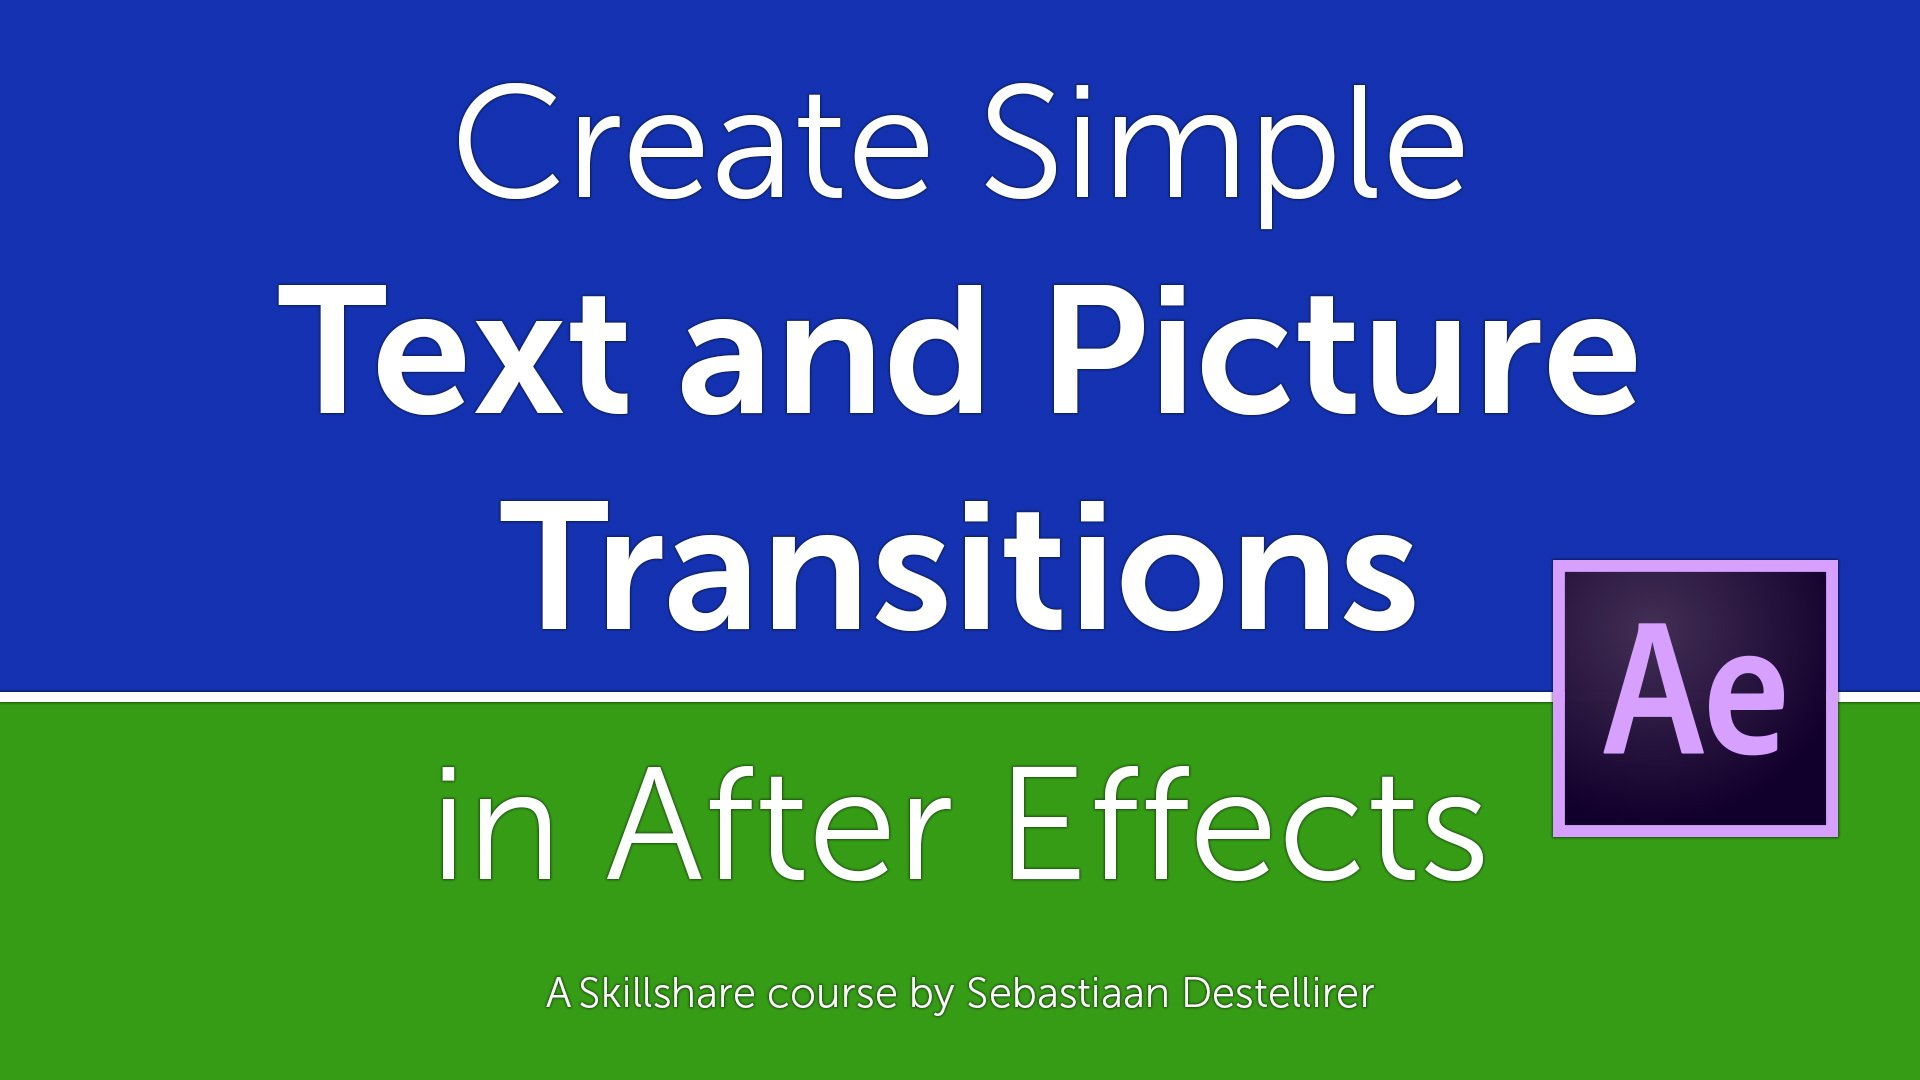 Create a Simple Text and Picture Transitions Animation in After